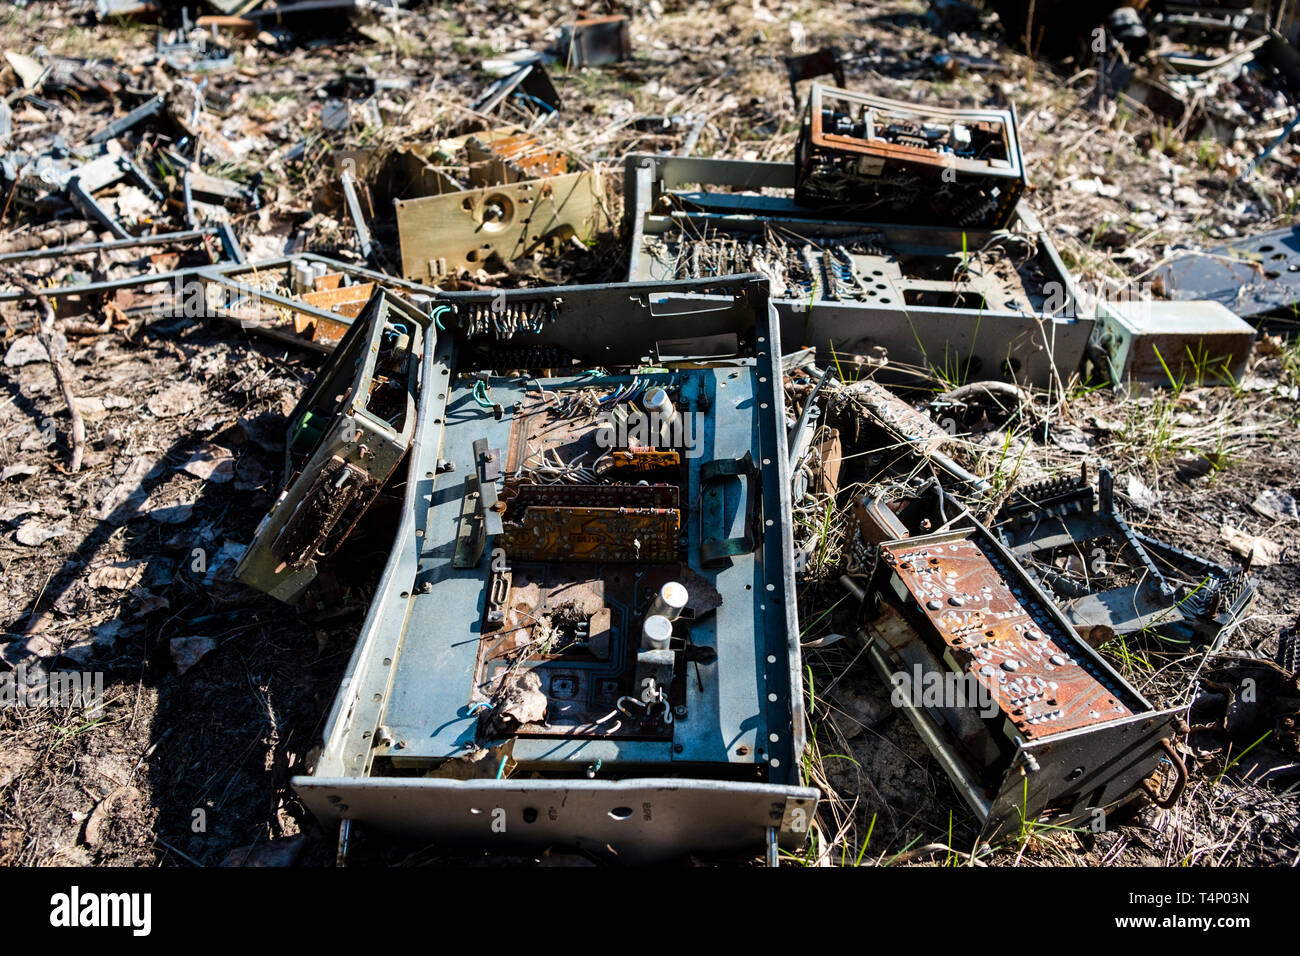 Abandoned circuit boards and computer components at the site of the Duga-1 array within the Chernobyl Exclusion Zone, Ukraine. The Duga radar was a so - Stock Image